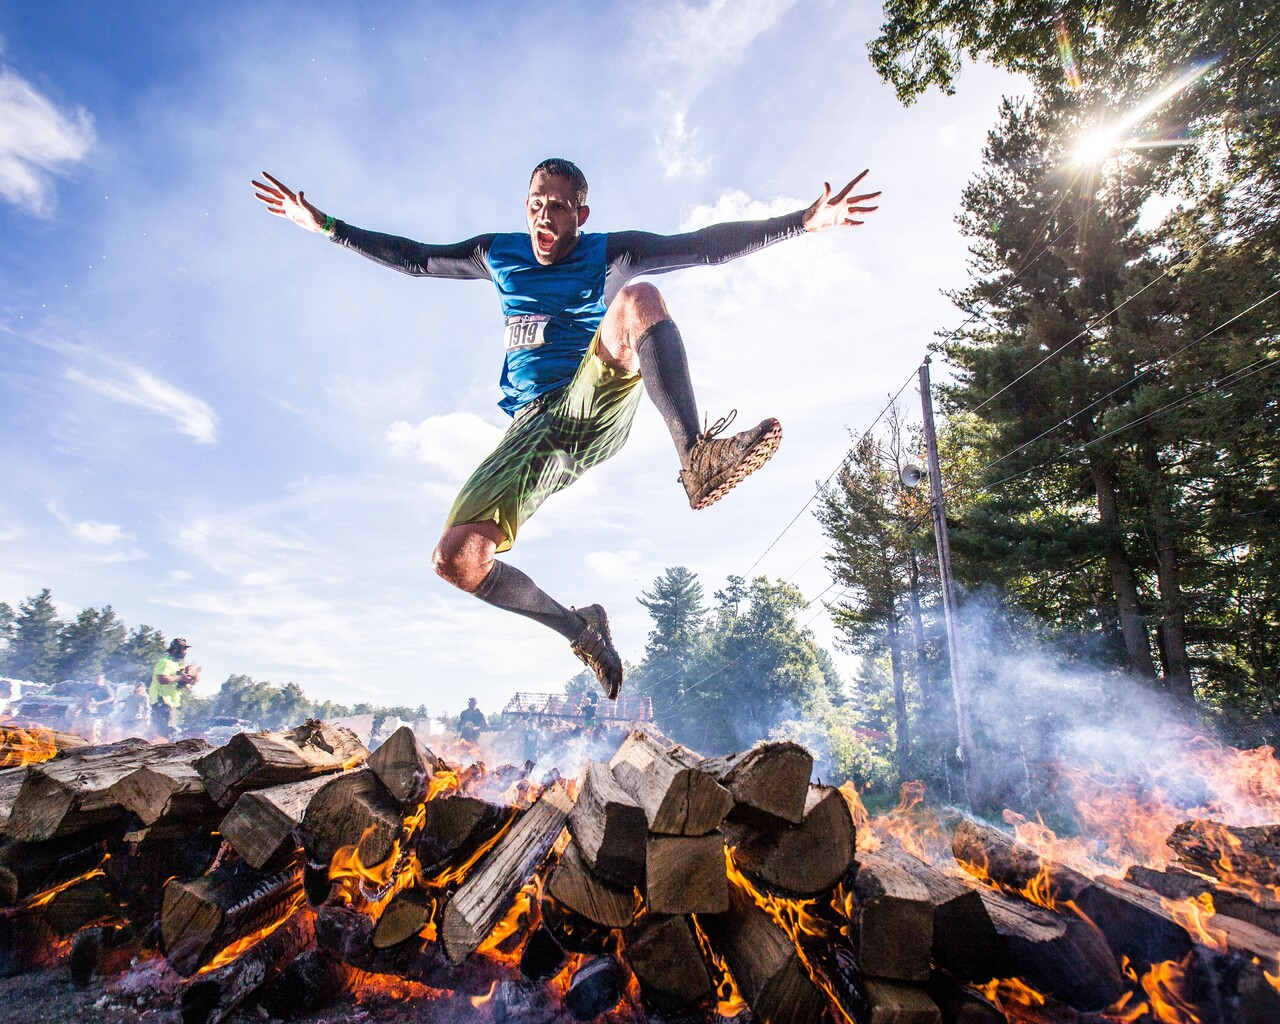 player-jumping-out-of-burning-woods-wk.jpg